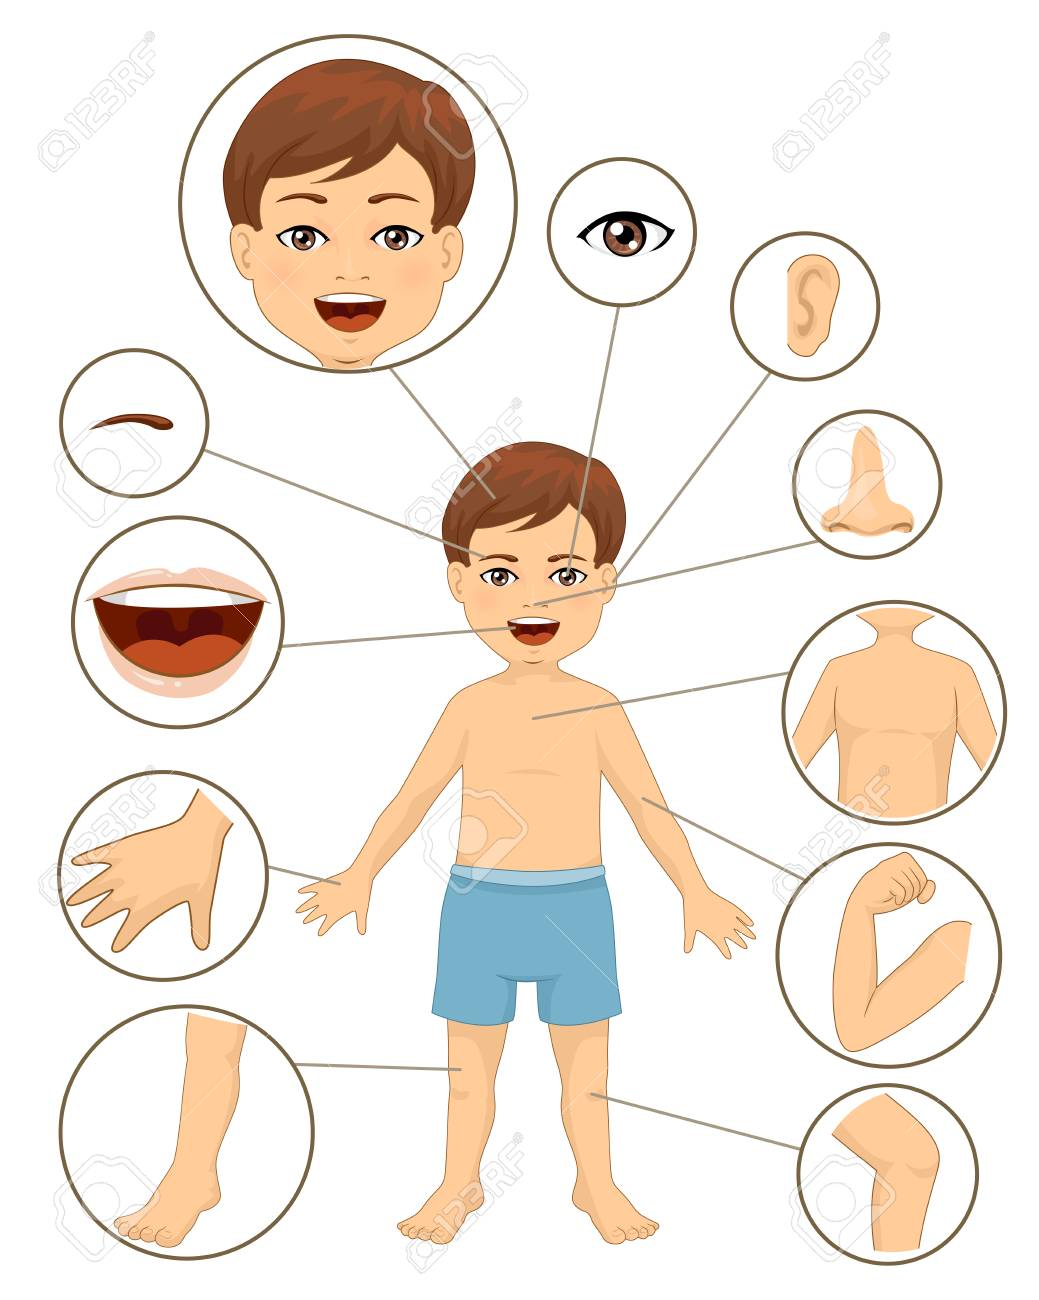 Illustration Of A Kid Boy With Different Parts Of The Body For